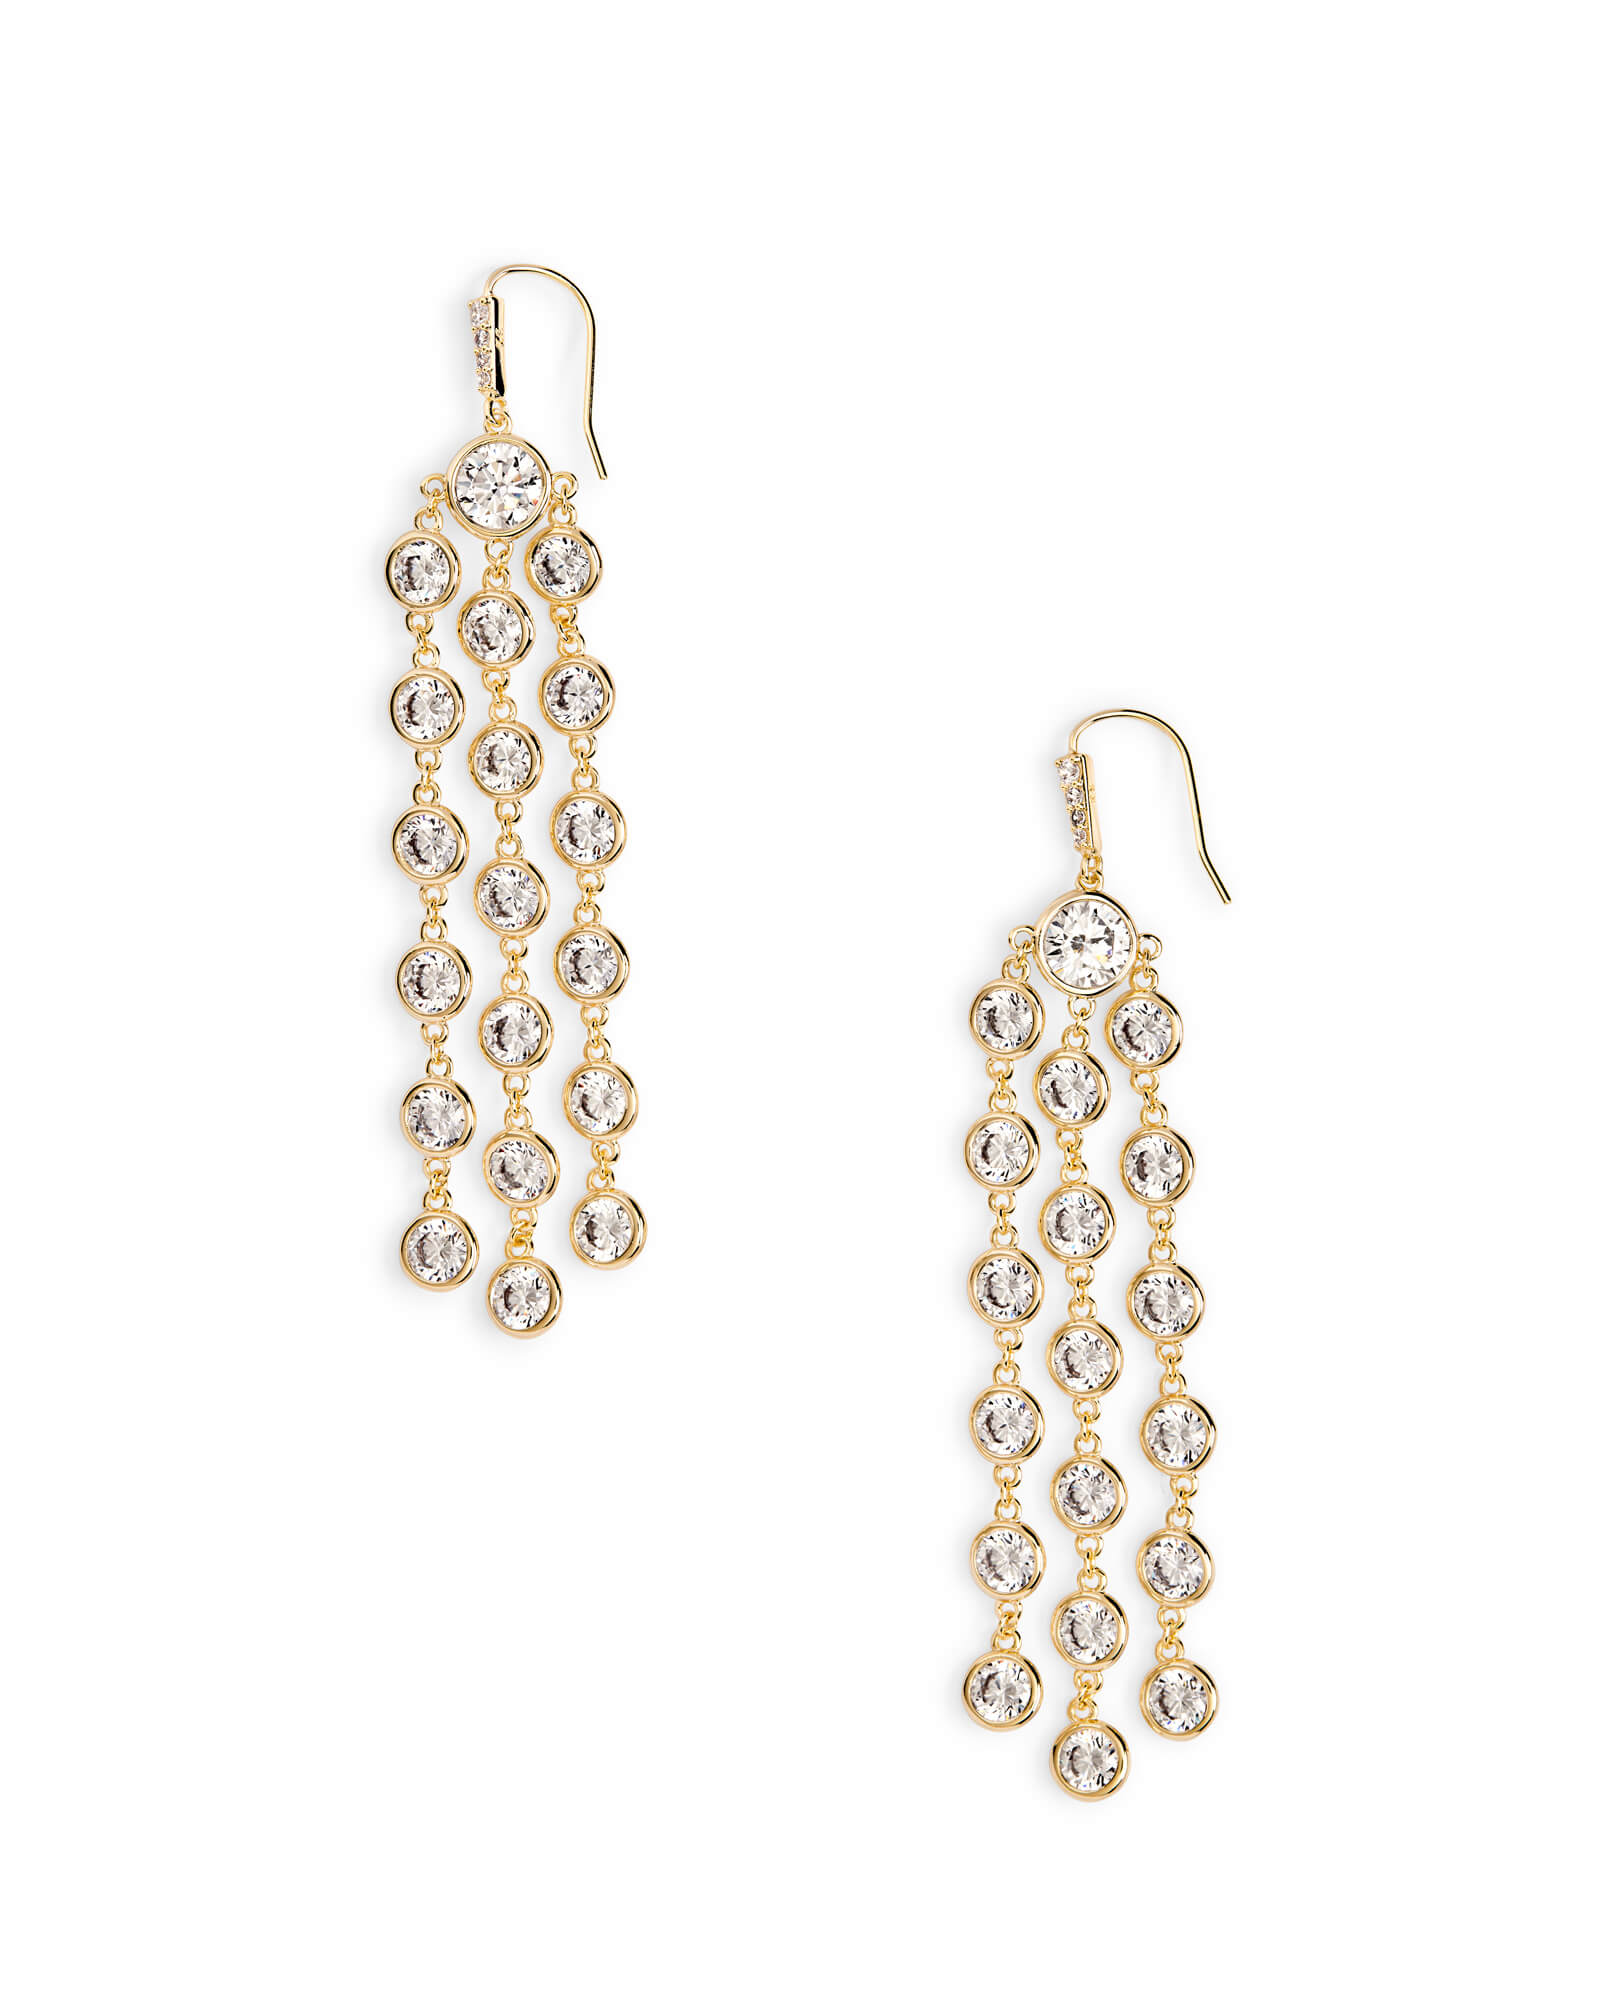 Daya Statement Earrings in Gold